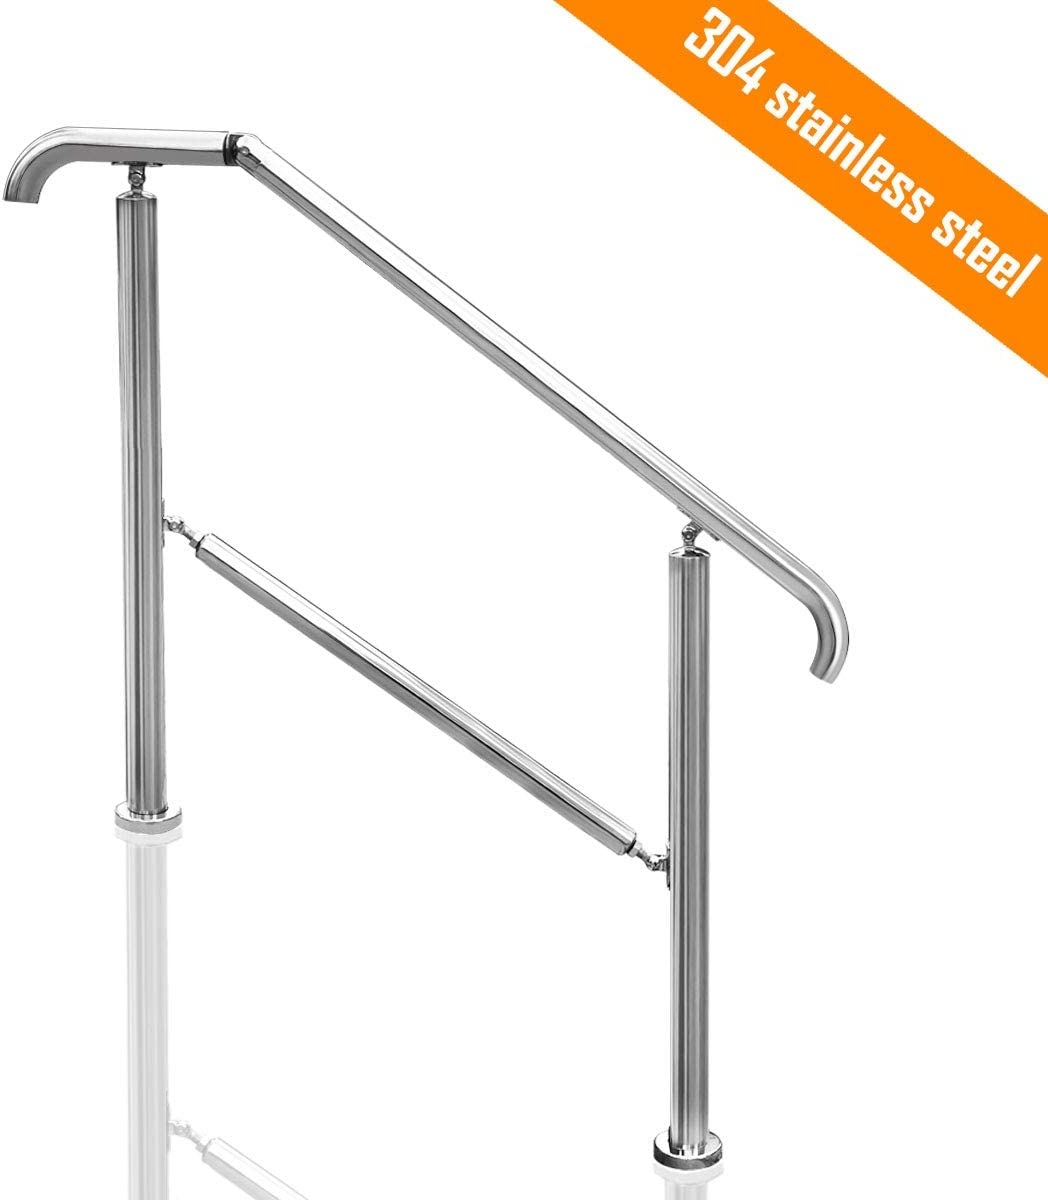 Transitional Handrail Stainless Steel Fits Level Surface And 1To 5 | Stainless Steel Outdoor Handrails | Safety | Stainless Pipe | Hand Rail | Tube | Square